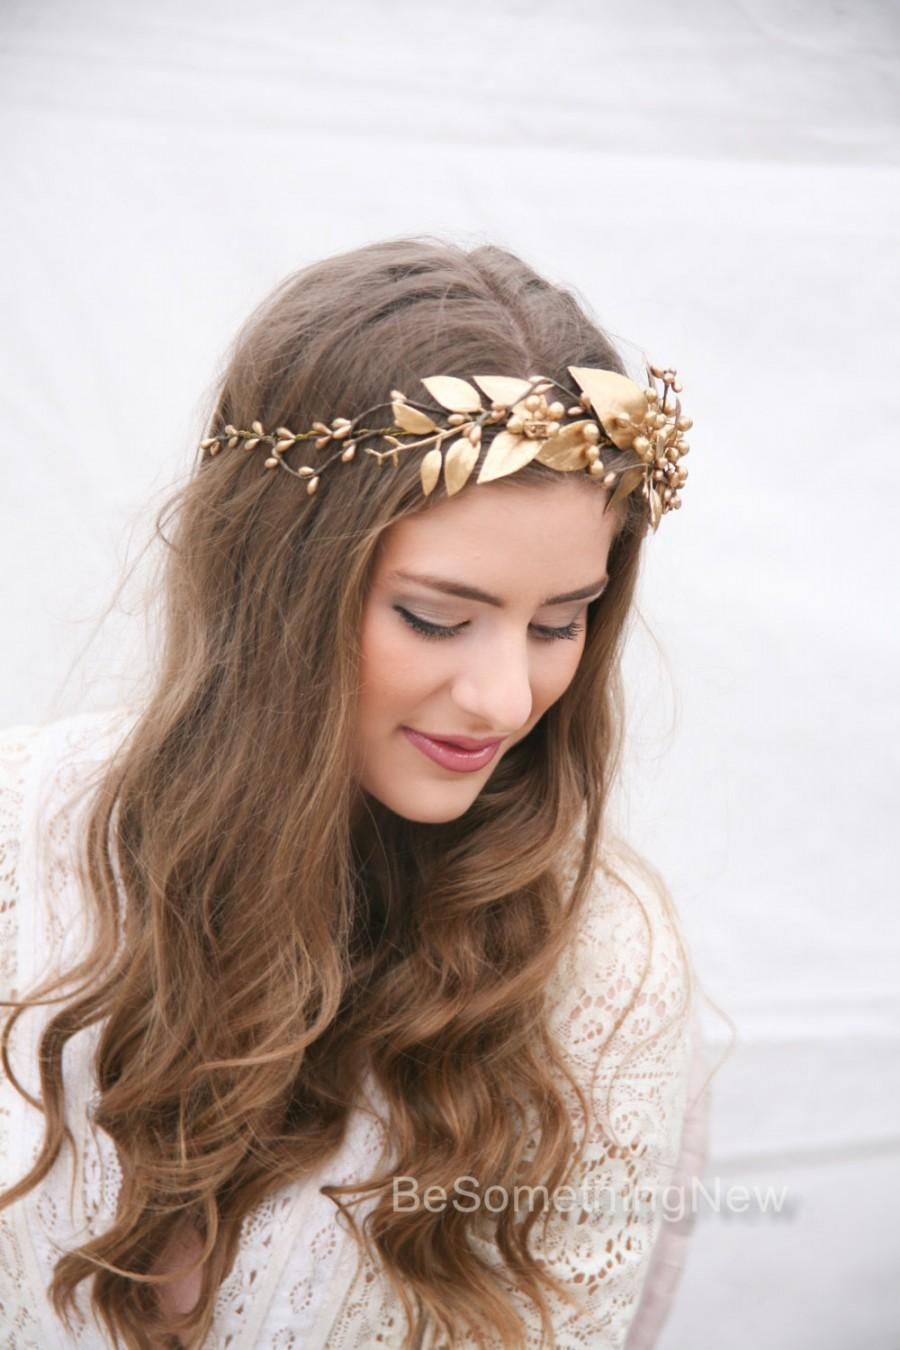 Mariage - Gold Rustic Bohemian Wedding Wreath, Headpiece of Golden Leaves and Berries Gold Flower Crown Bridal Hair Vine Boho Wedding